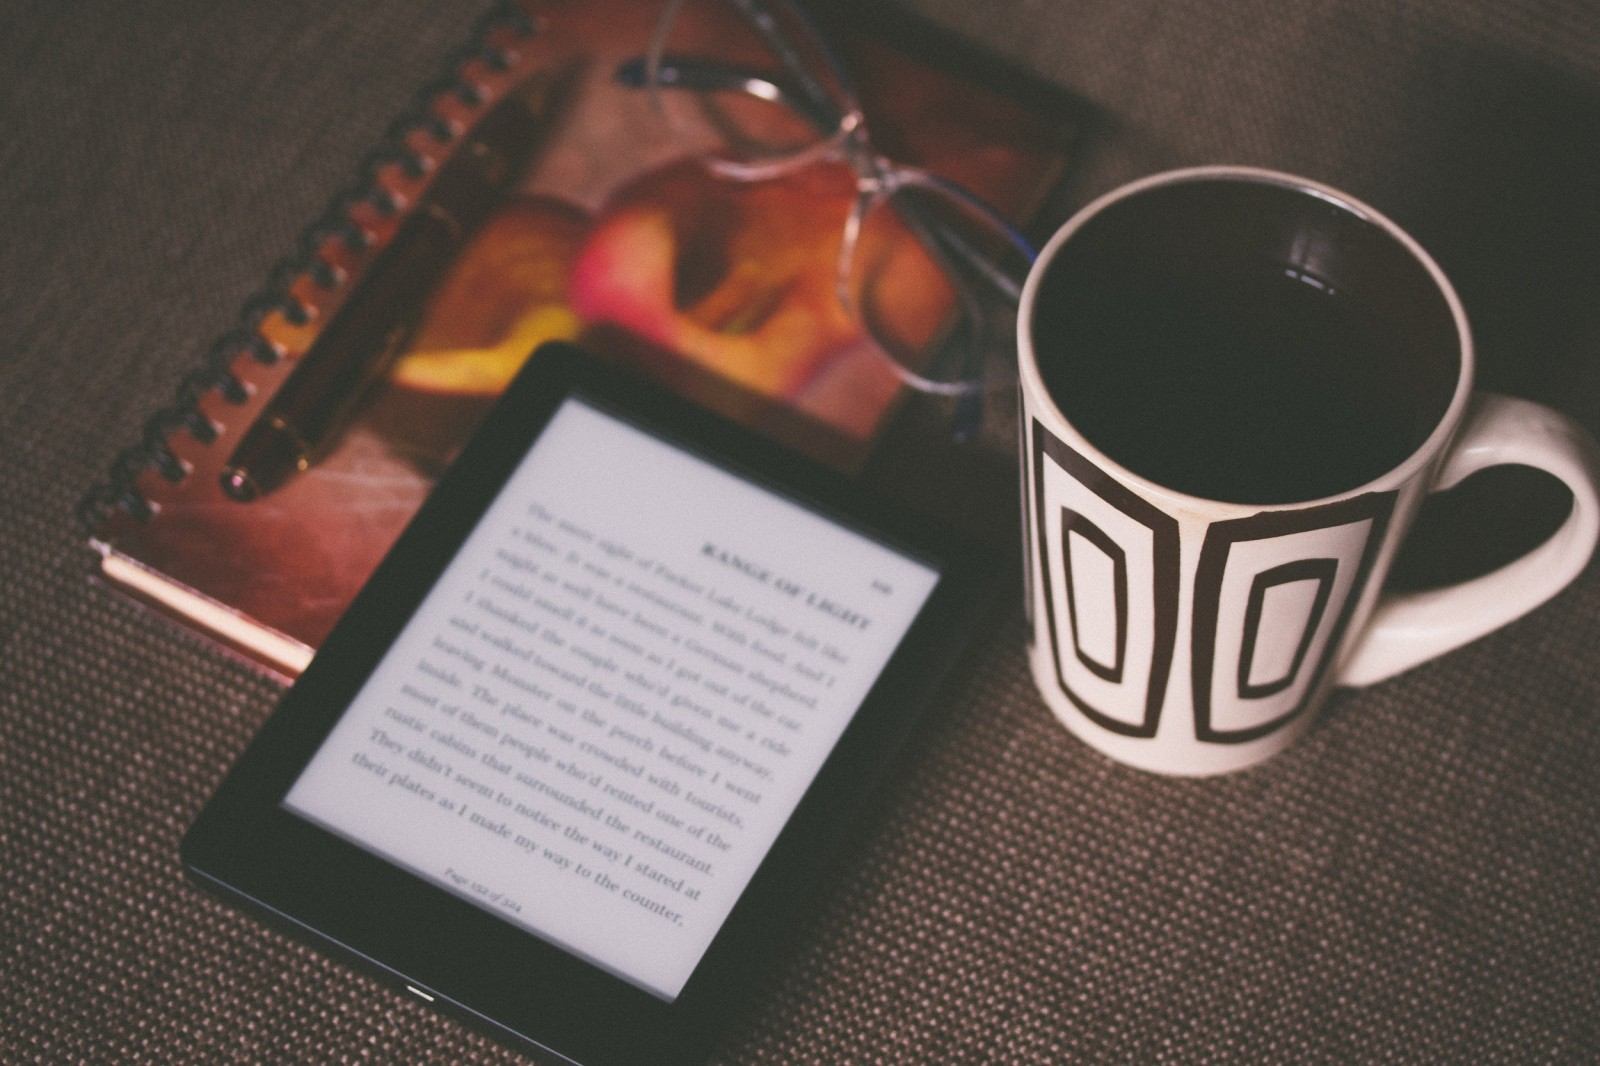 Come funziona Kindle Unlimited